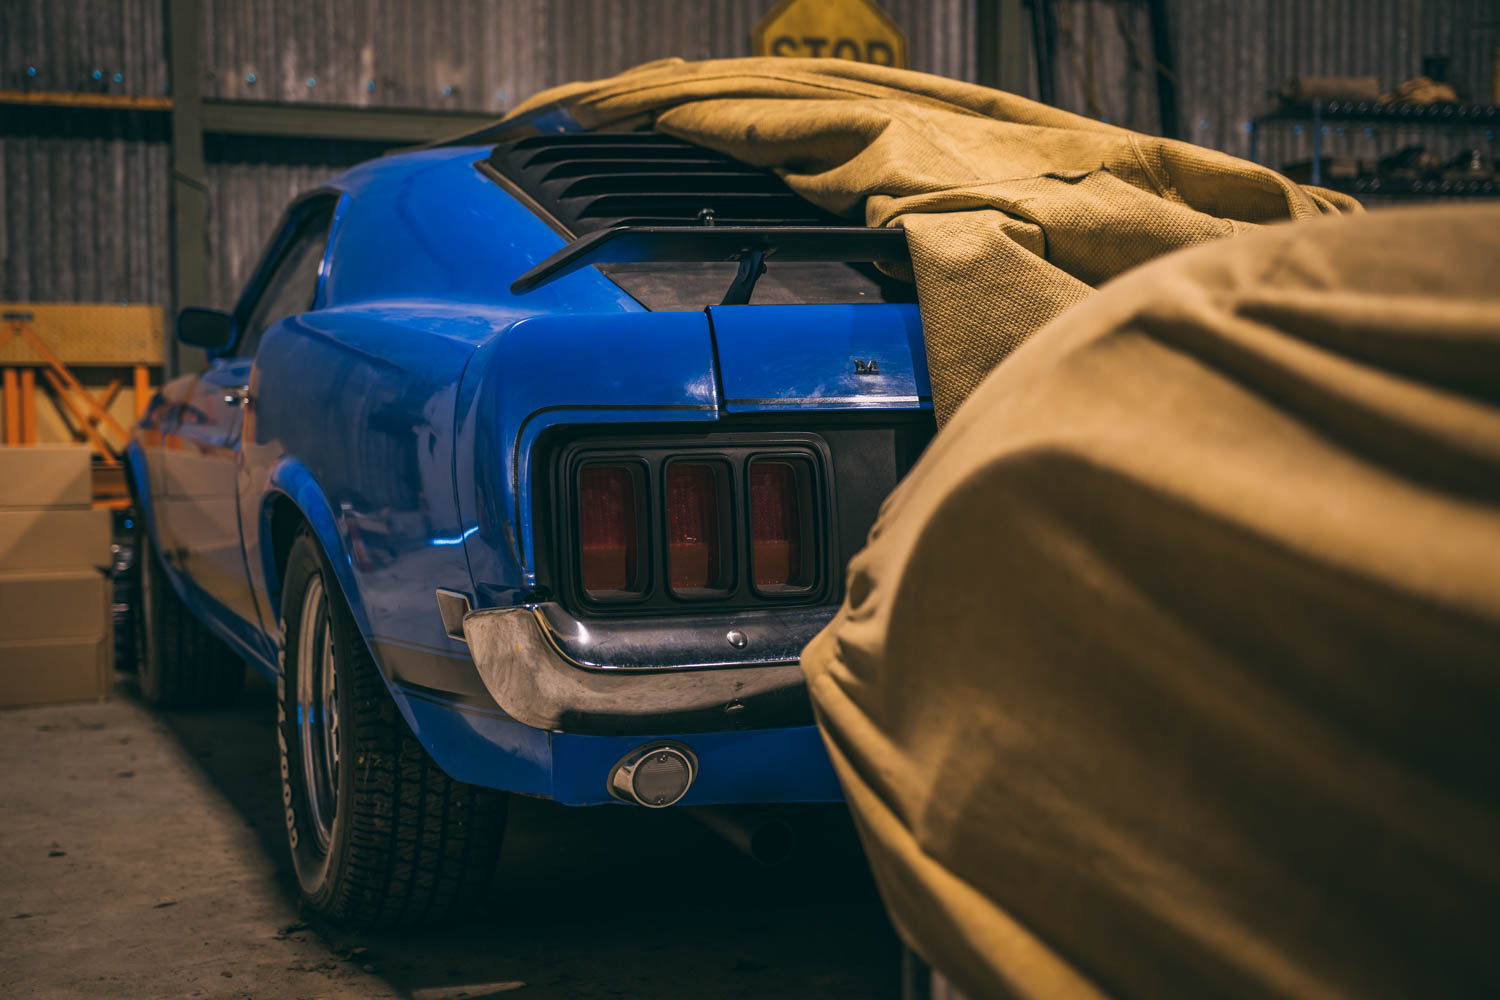 Mustang under a cover